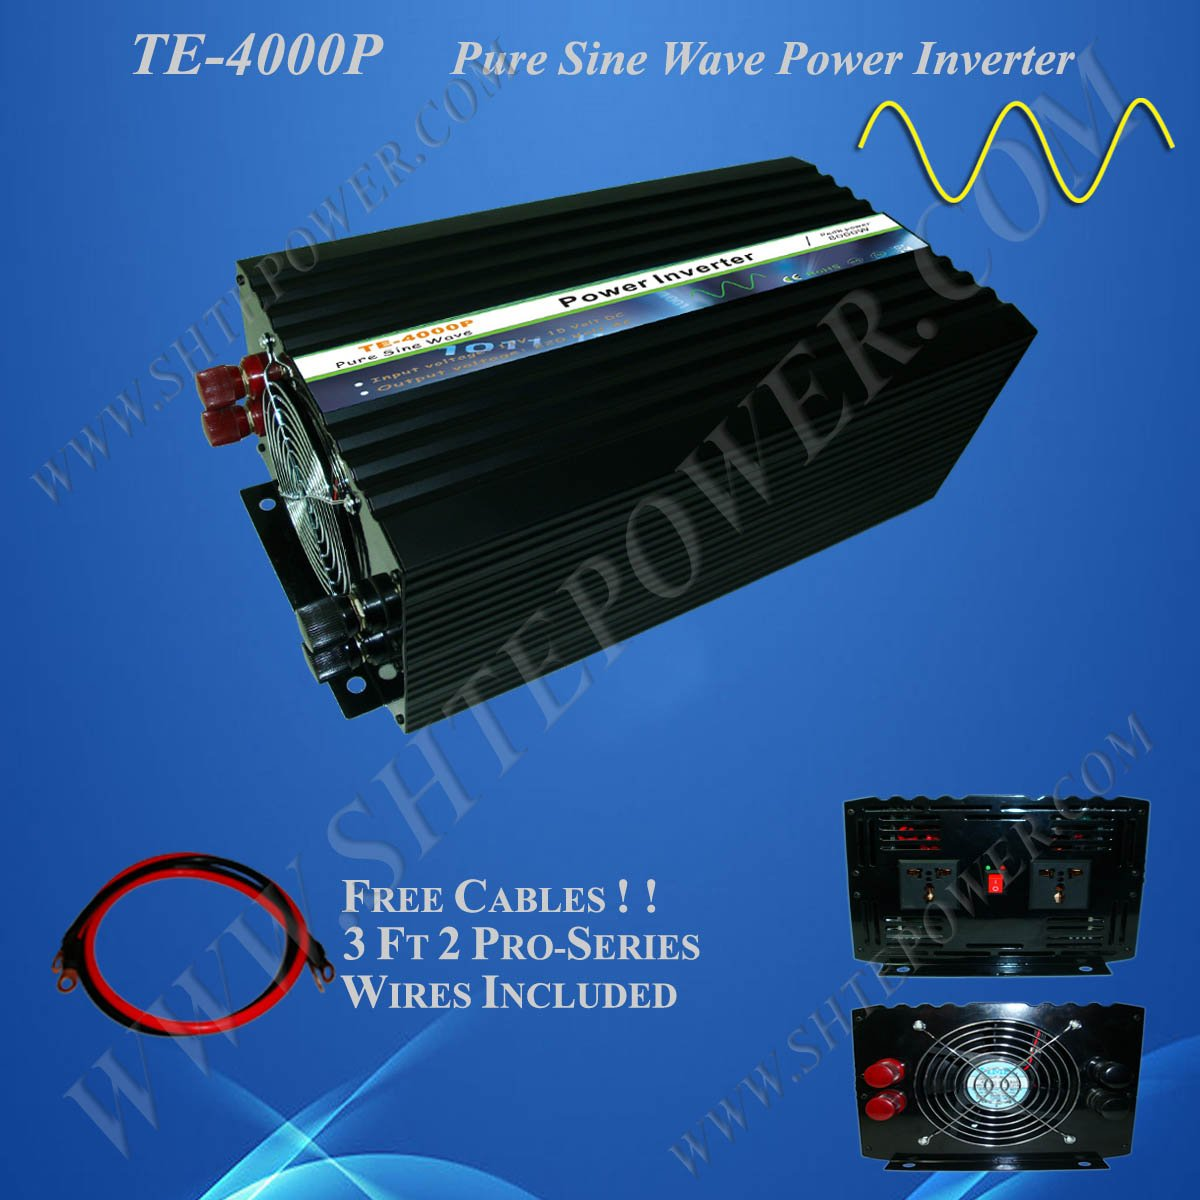 High frequency power <font><b>inverter</b></font> <font><b>12v</b></font> 240v <font><b>4000w</b></font> pure sine wave image